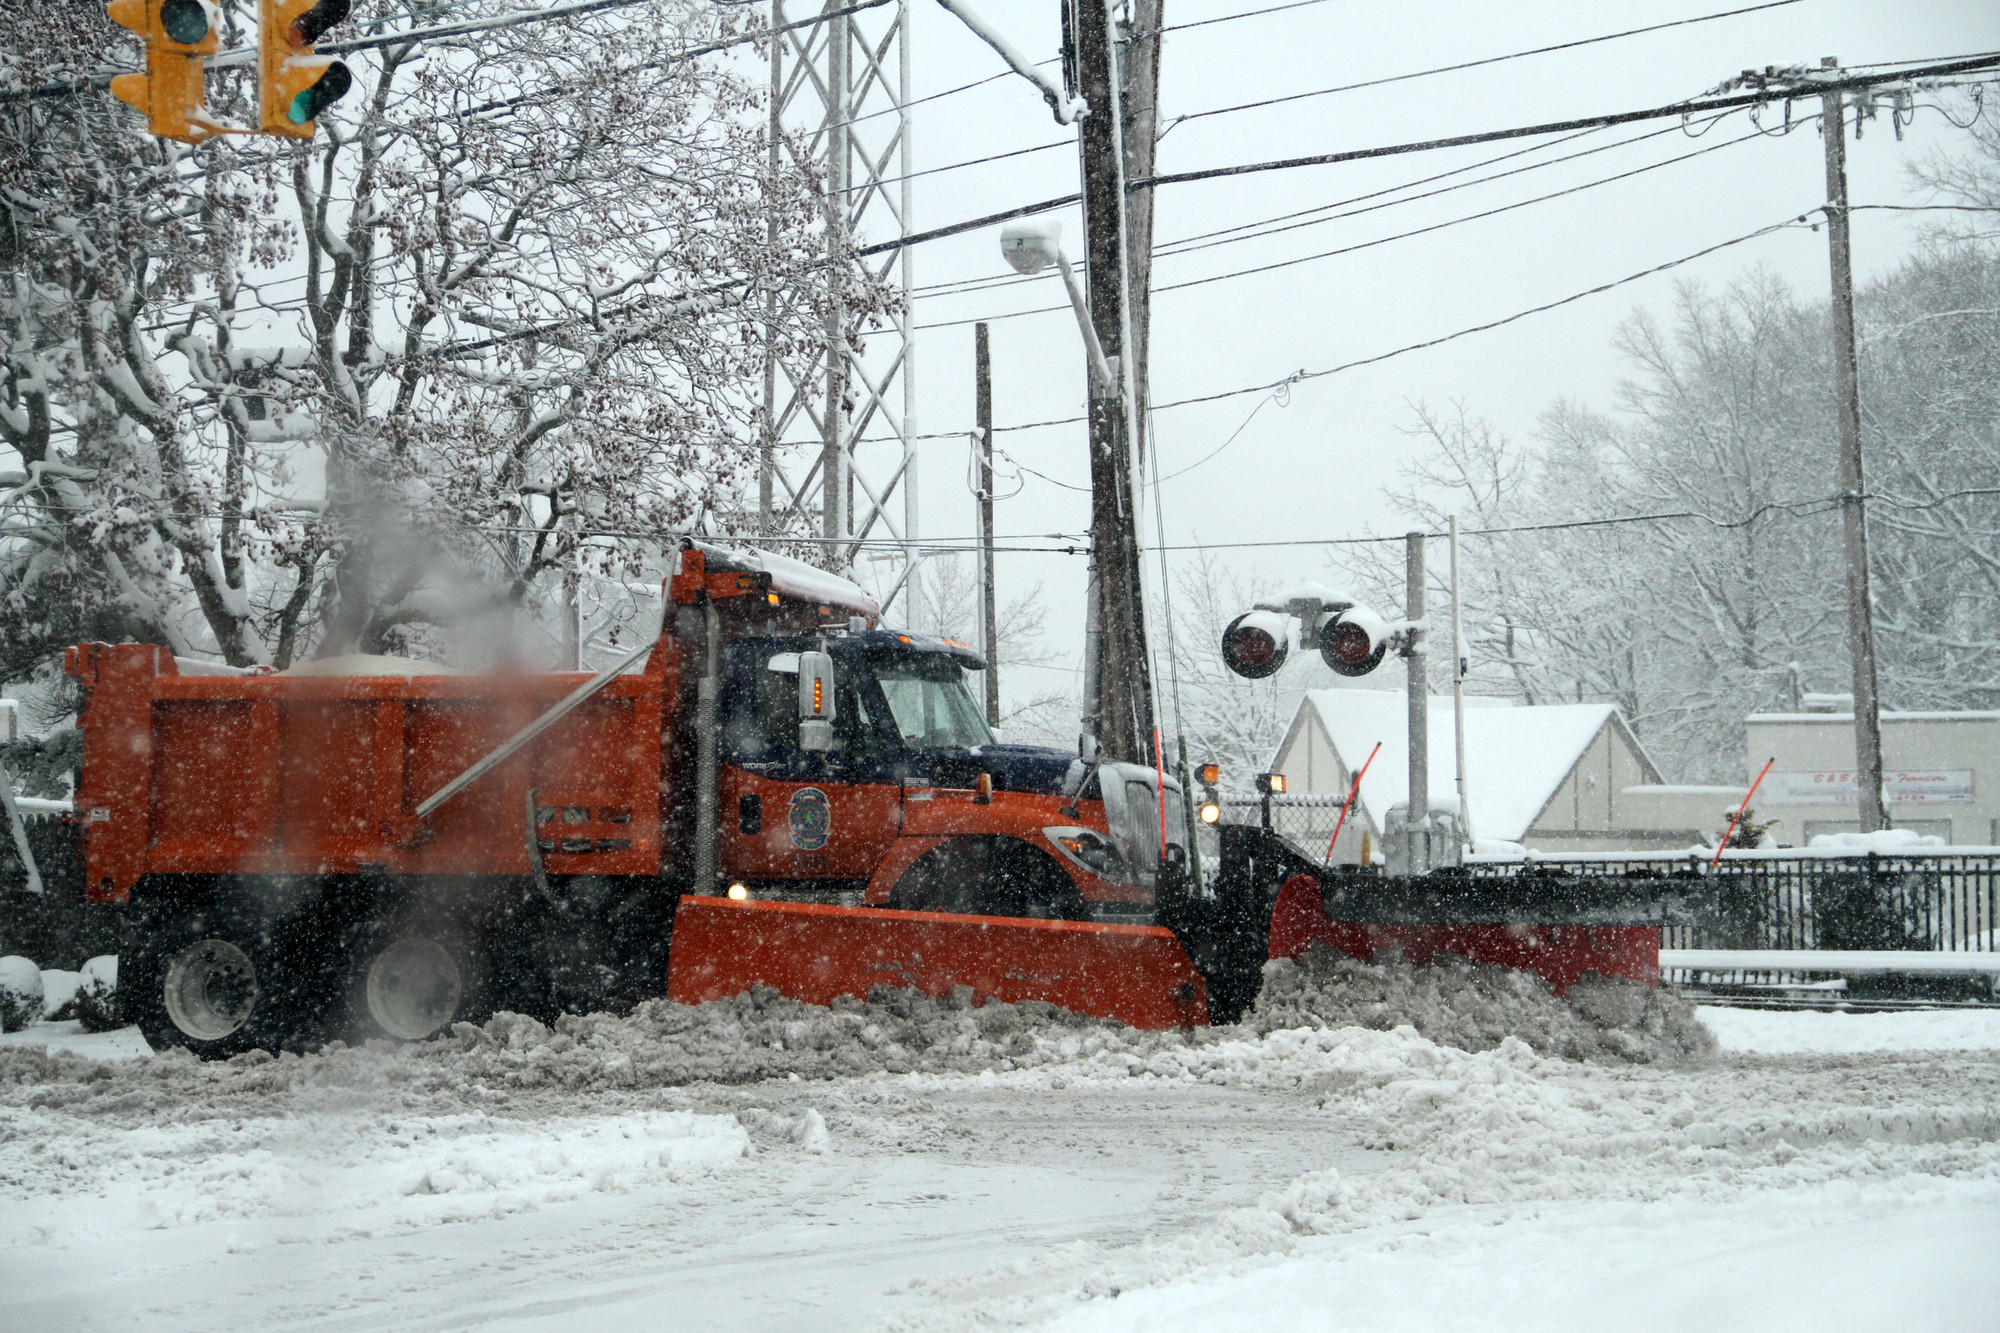 The Malverne Department of Public Works deployed its plows on Monday to keep the village's business district functional.